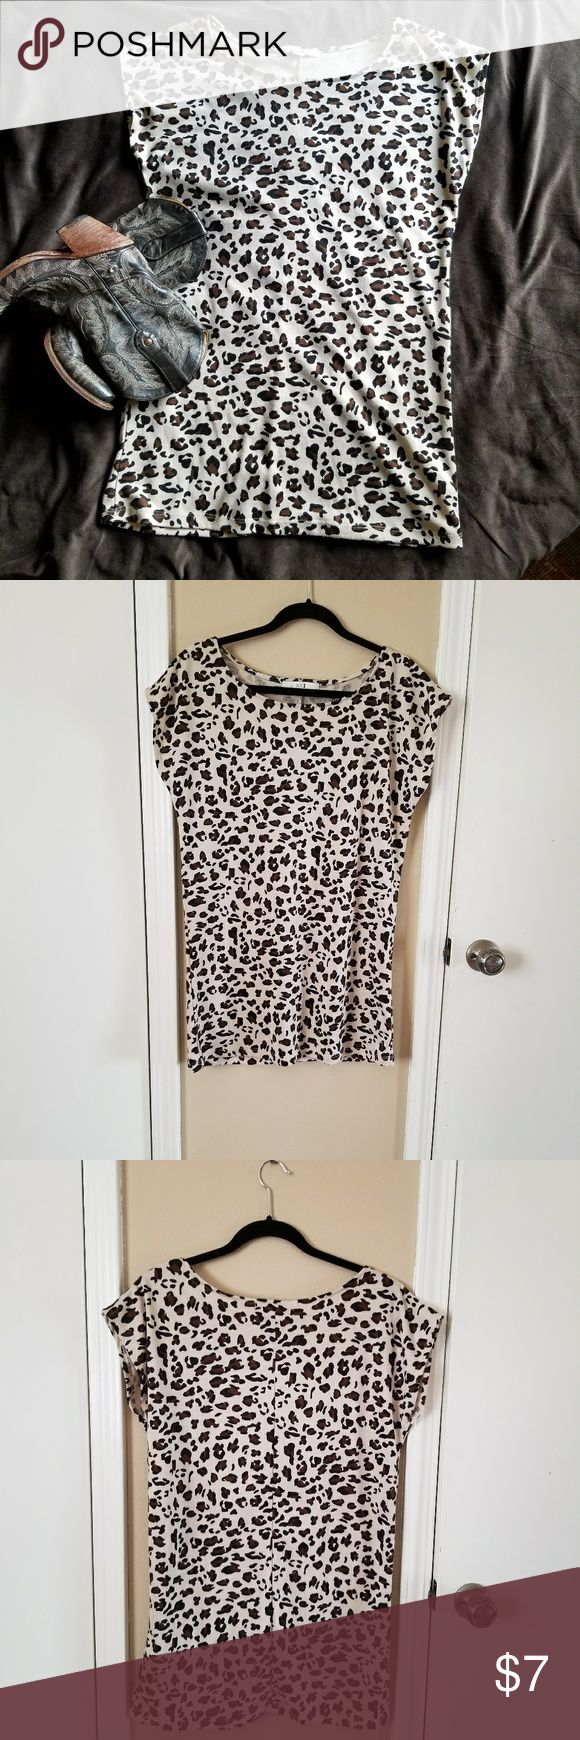 Animal Print Mini Dress Animal Print Mini Dress. Measures approximately 28 inches - has been worn as a mini dress - be aware it is pretty short - See photo for fabric content. Pre-owned in good condition. Dresses Mini